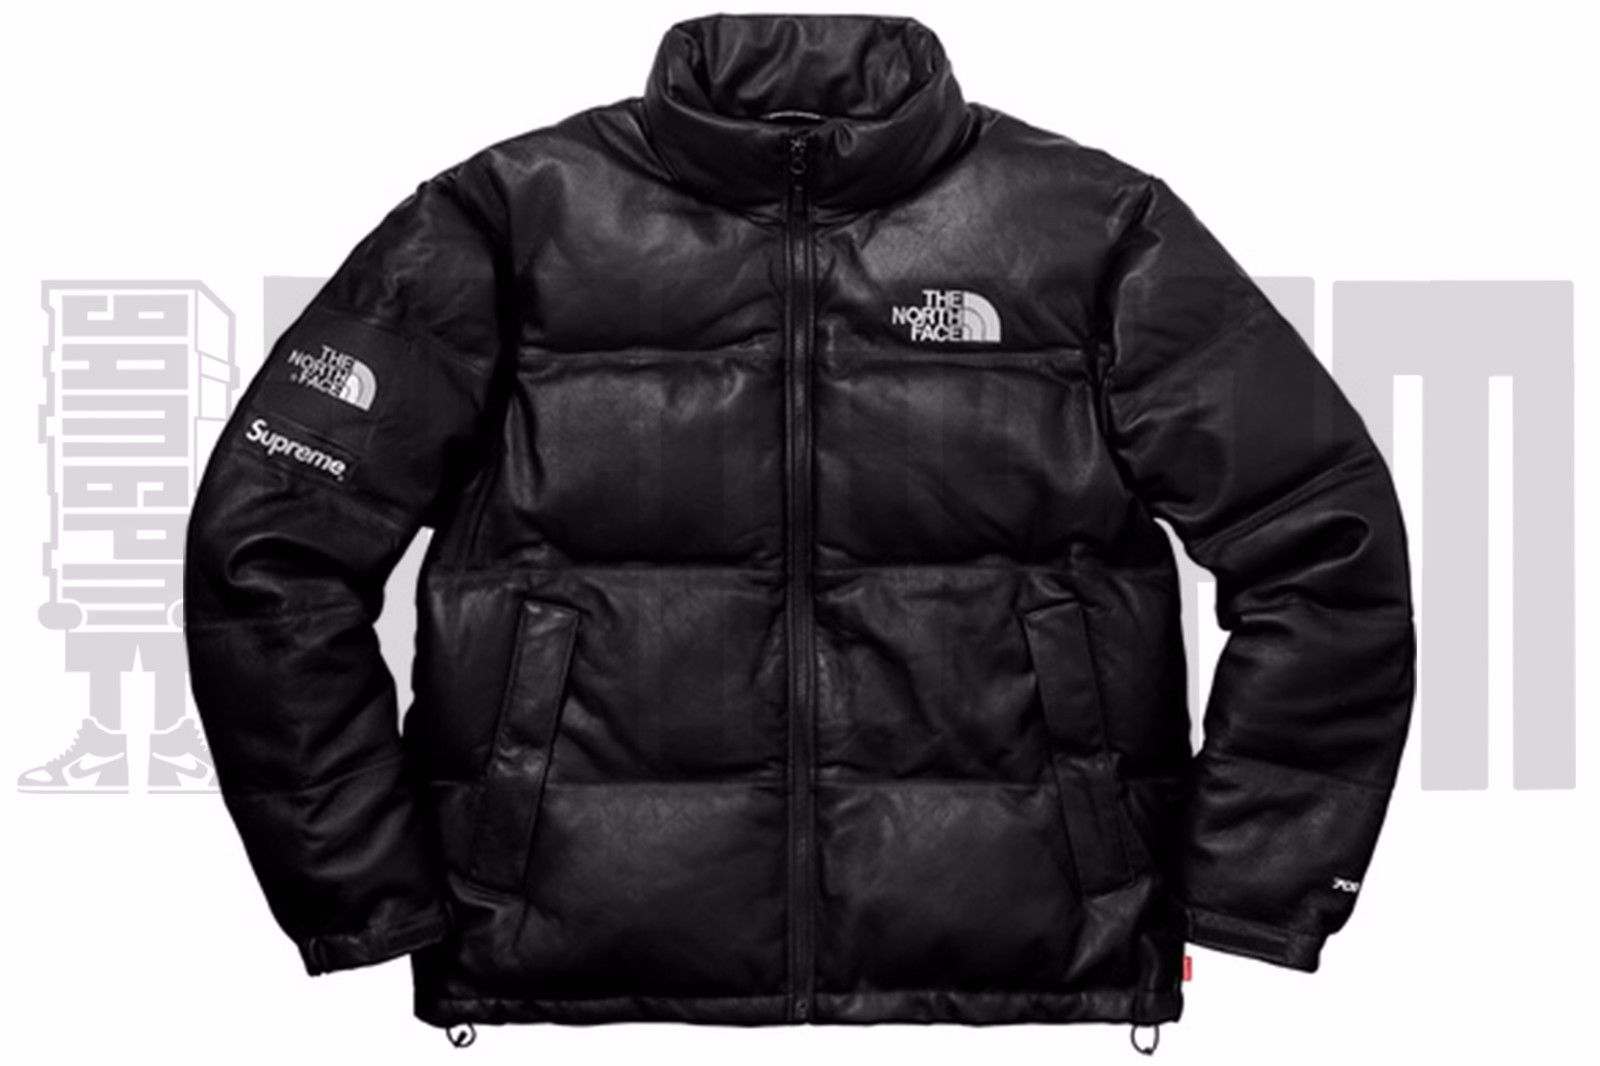 ... Supreme The North Face LEATHER NUPTSE JACKET L BLACK 700 tnf box logo  ds bogo ... 7481ebdb2